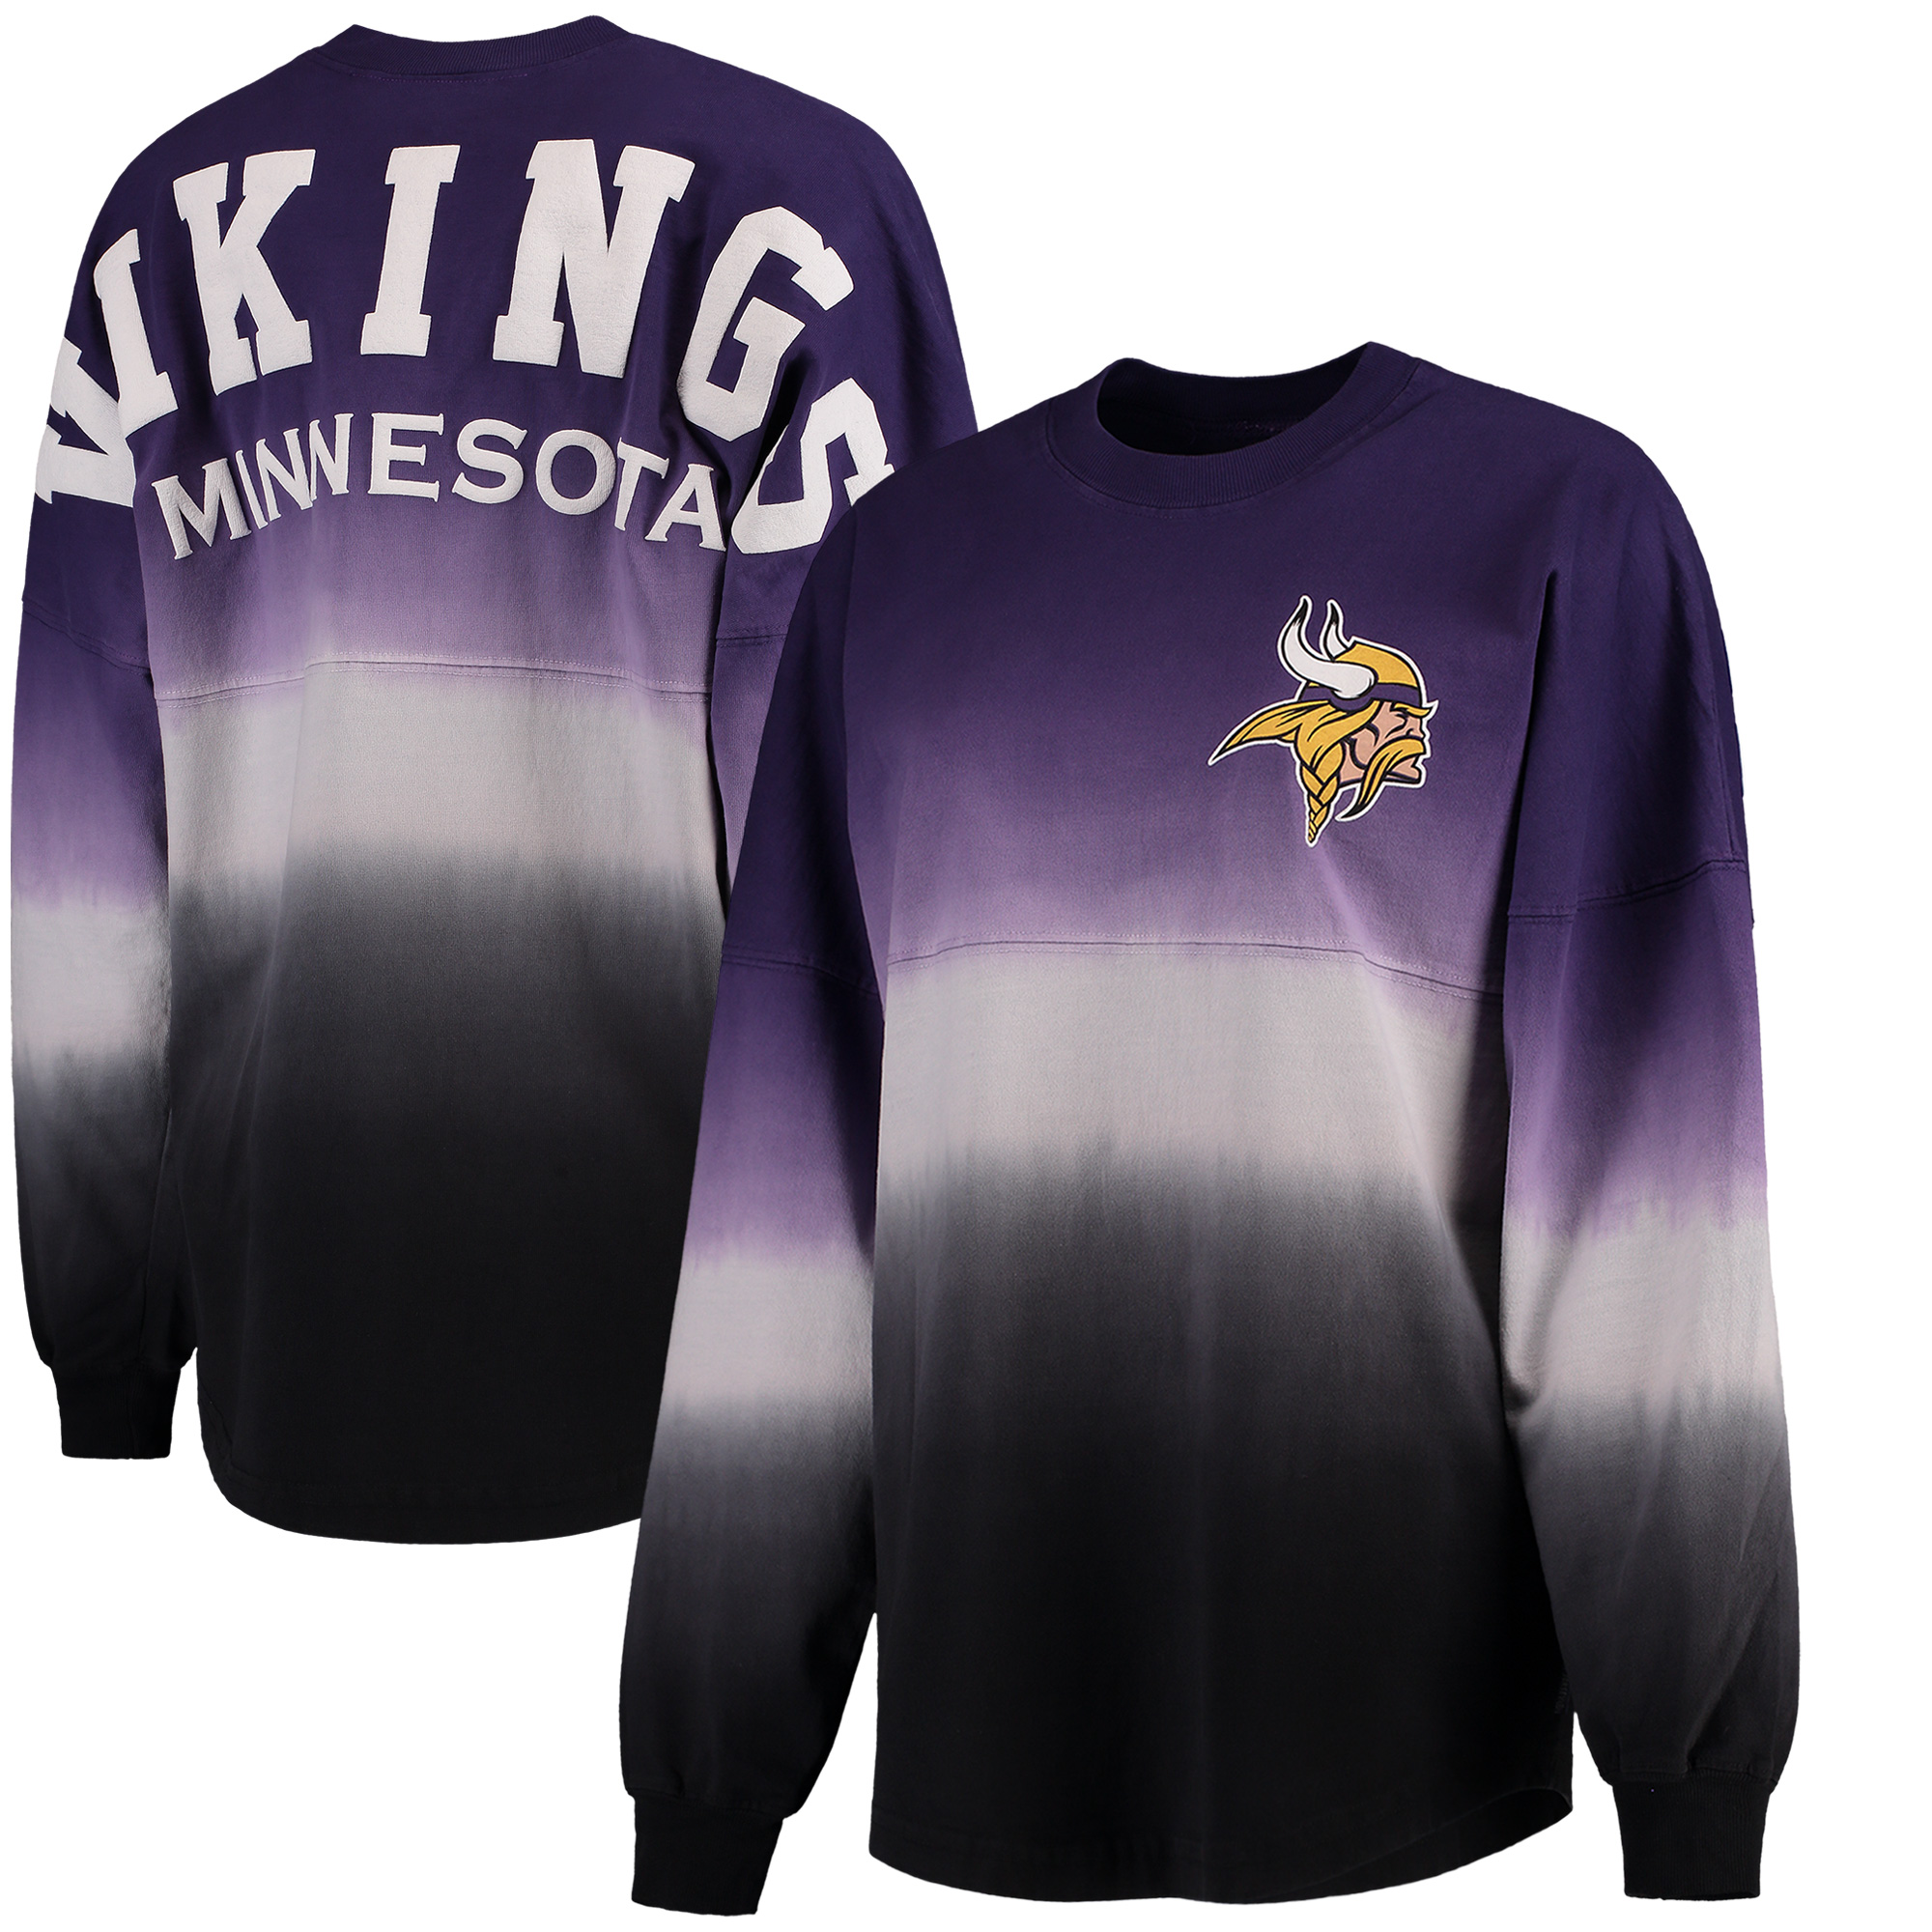 Minnesota Vikings NFL Pro Line by Fanatics Branded Women's Spirit Jersey  Long Sleeve T-Shirt - Purple/Black